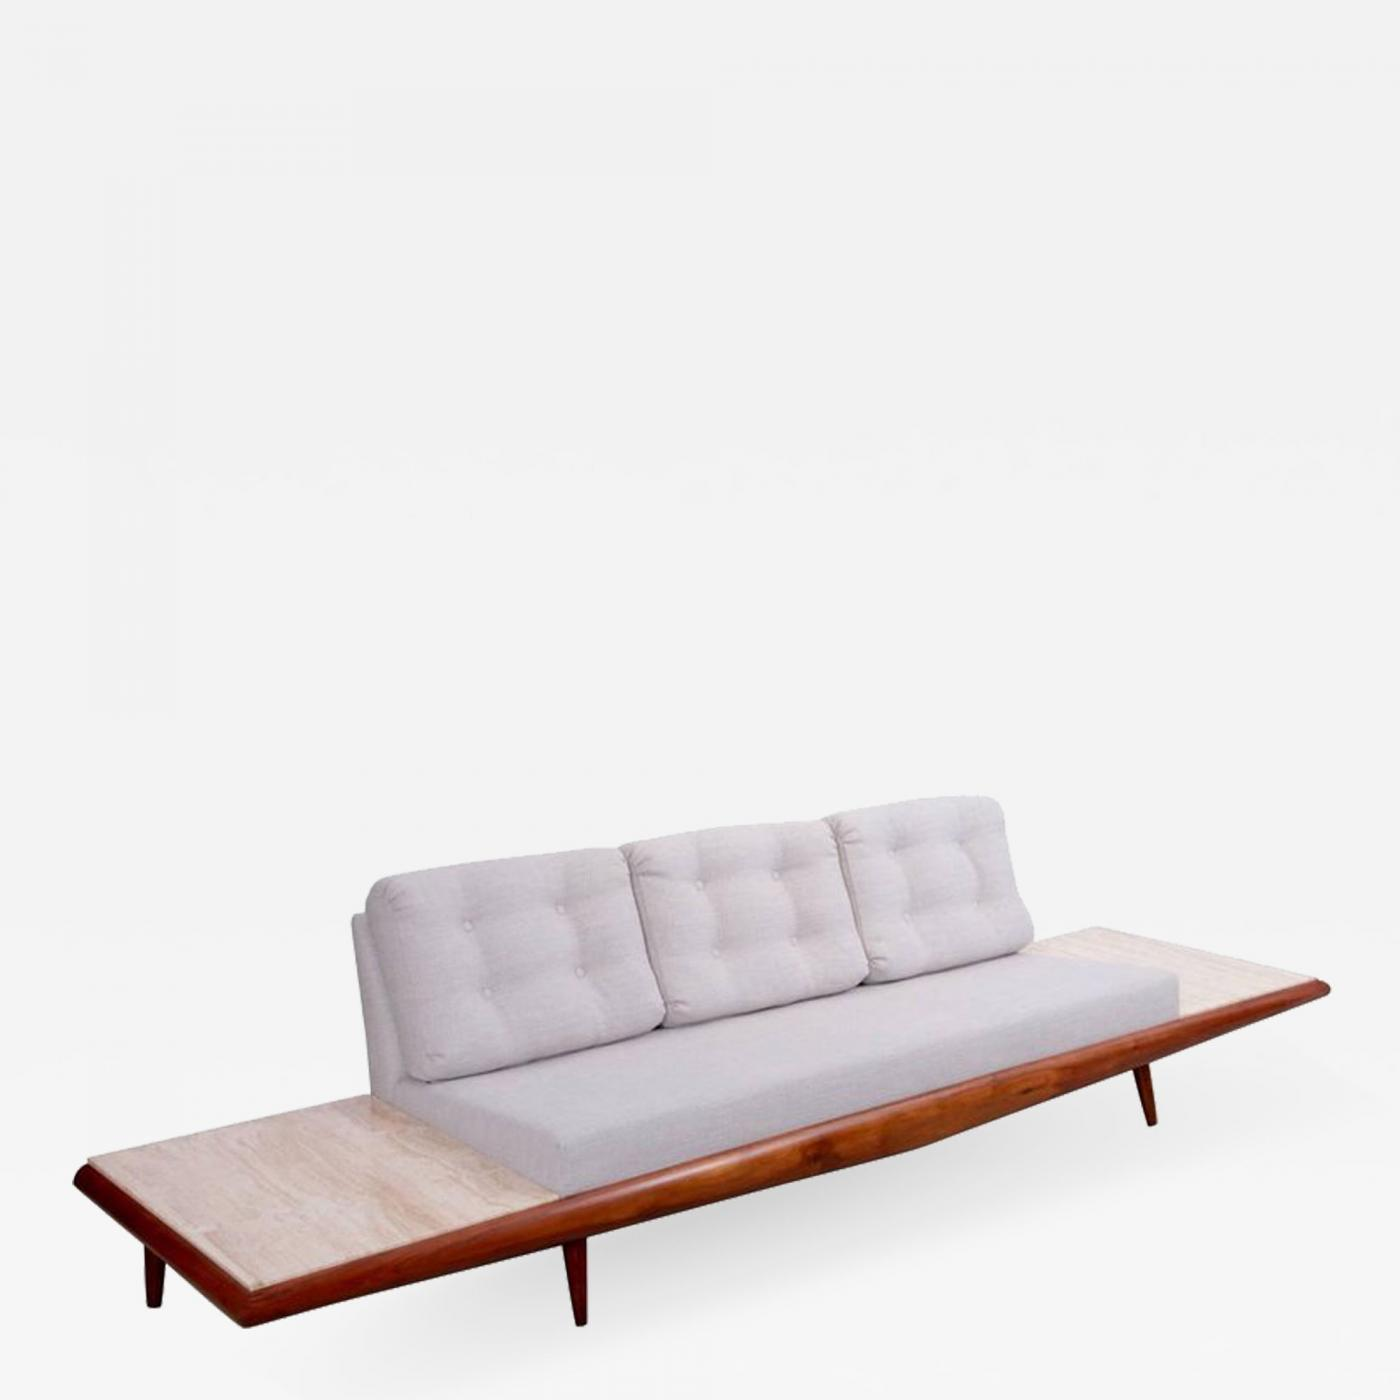 Astounding Adrian Pearsall Adrian Pearsall Sofa With Travertine Side Tables For Craft Associates Bralicious Painted Fabric Chair Ideas Braliciousco